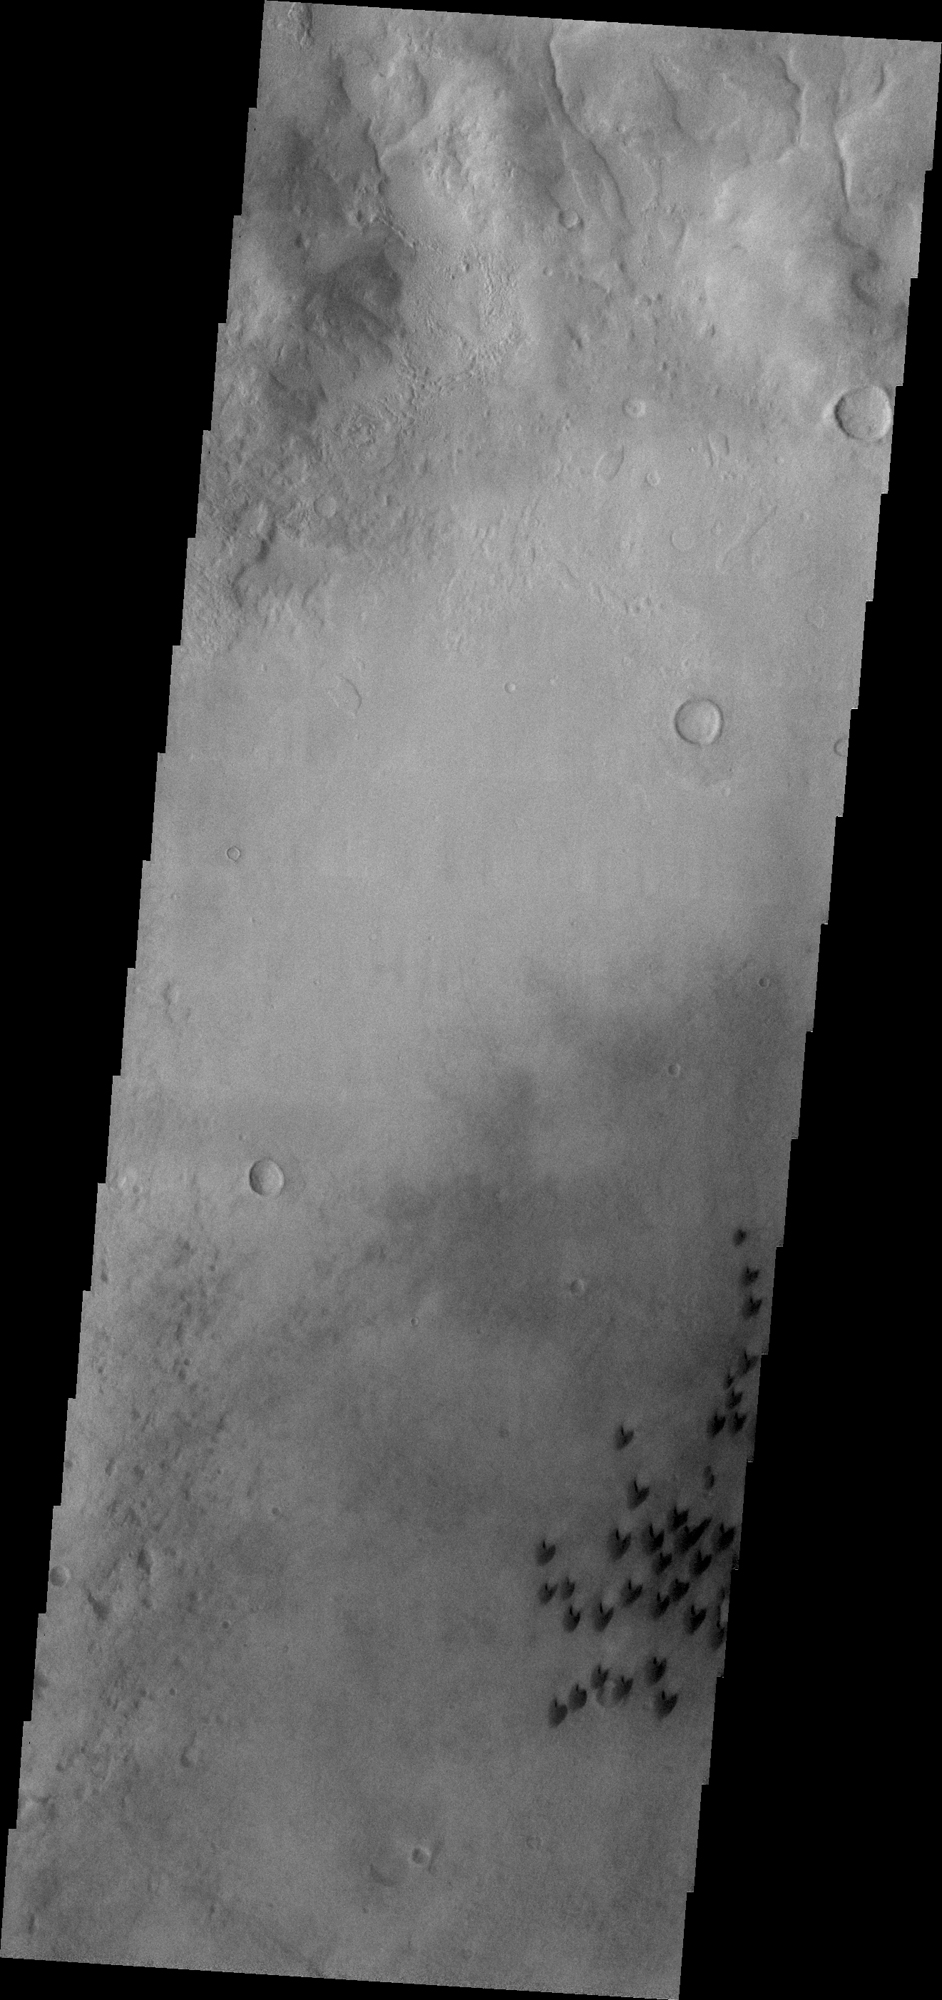 Individual dunes are seen on the floor of Arkhangelsky Crater in Noachis Terra by NASA's Mars Odyssey.